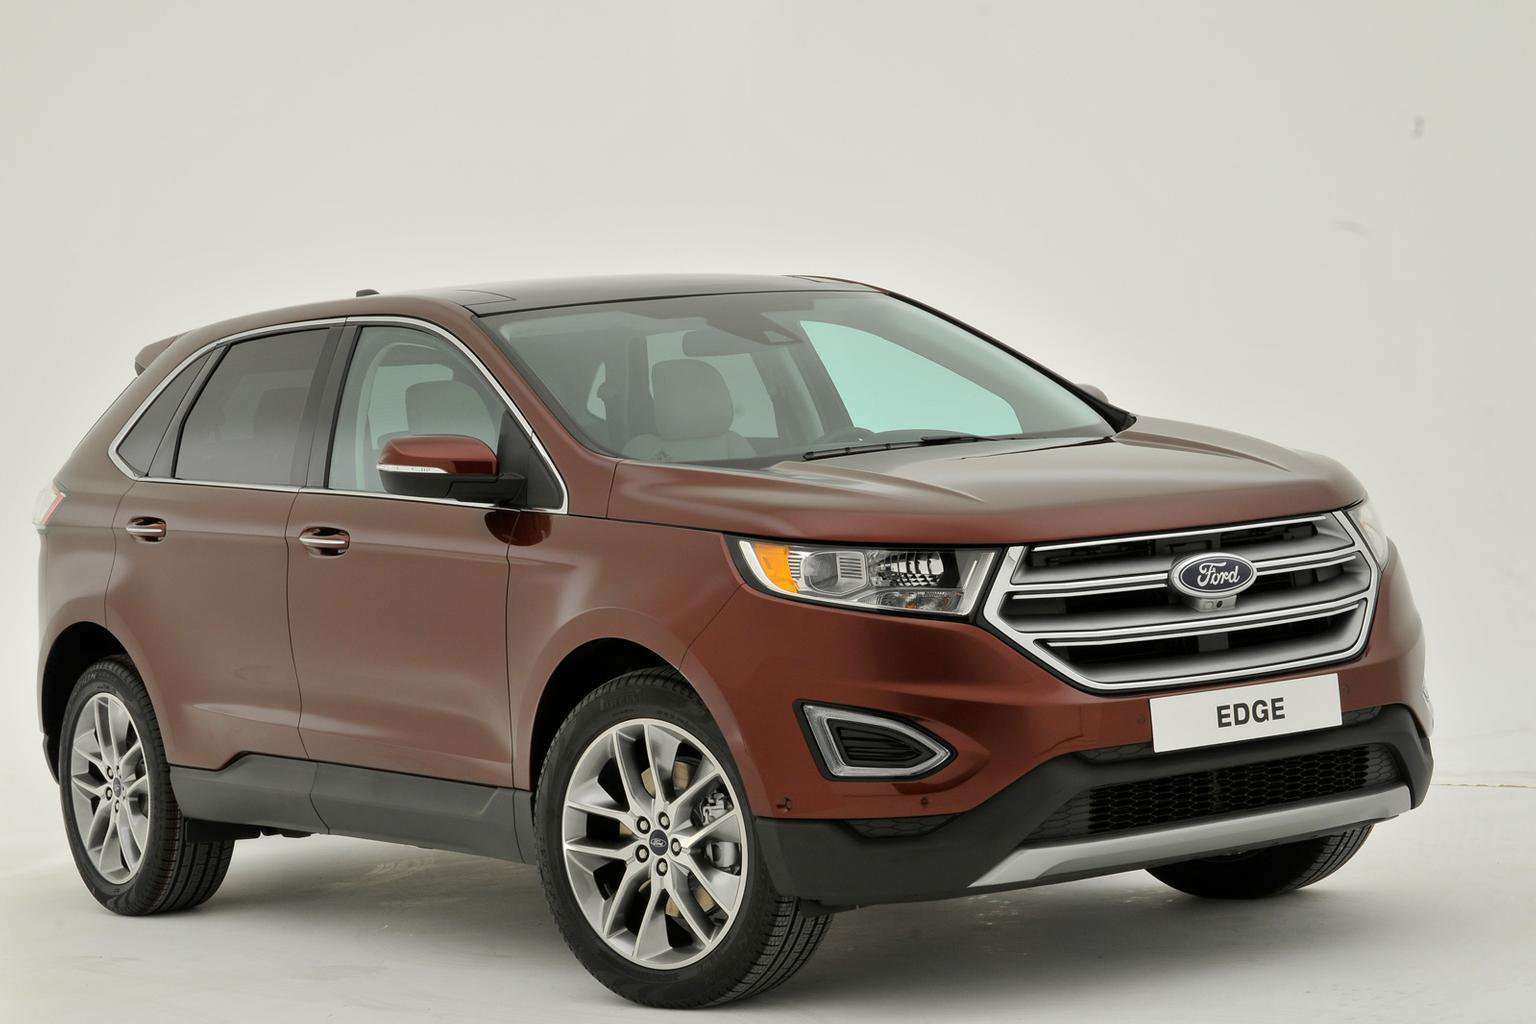 2016 Ford Edge SUV - on-sale date, specs and engines